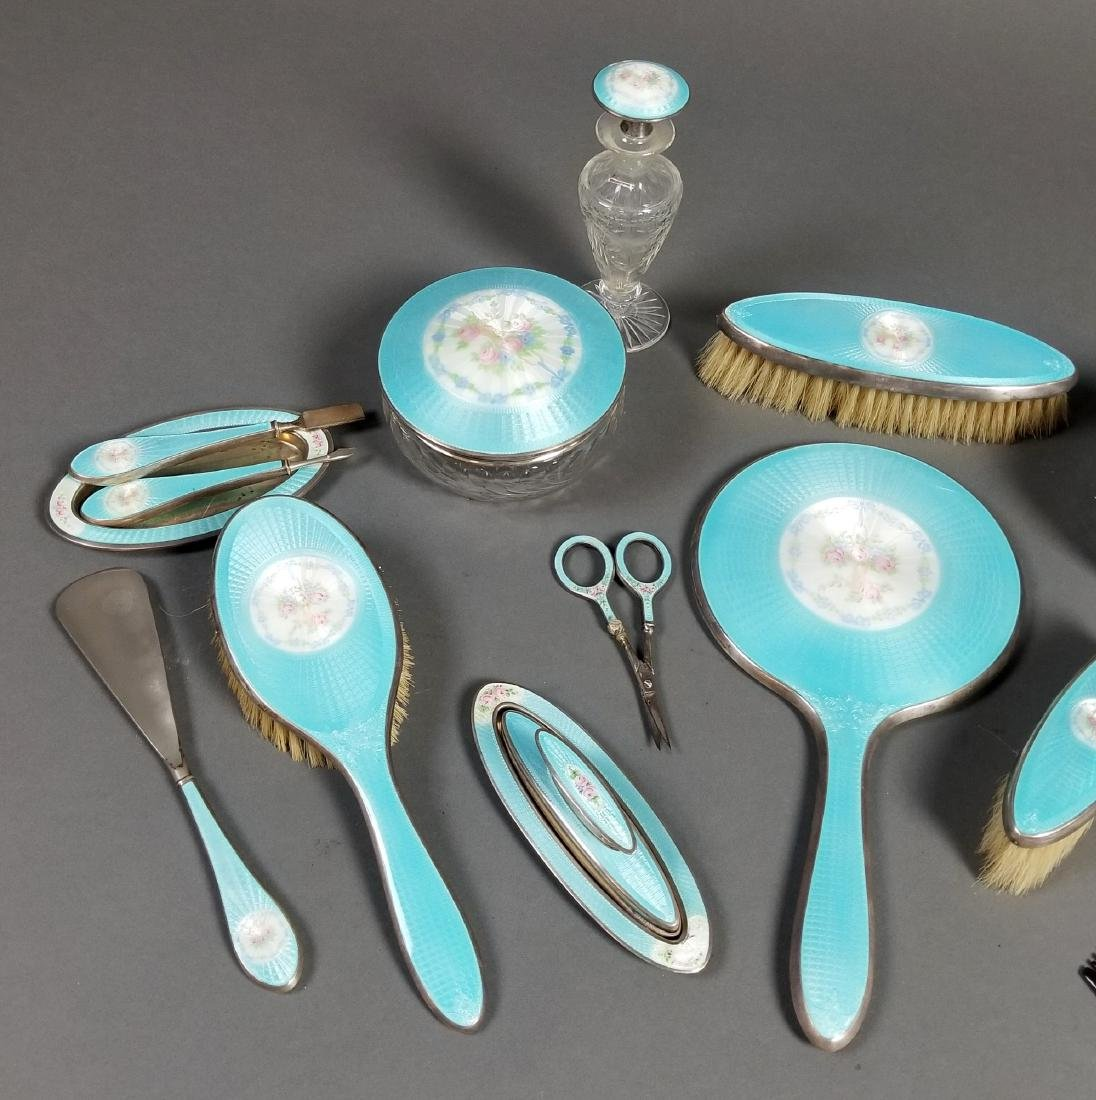 A Late 19th C. 17 Pc. Enamel and Sterling Silver Vanity - 2